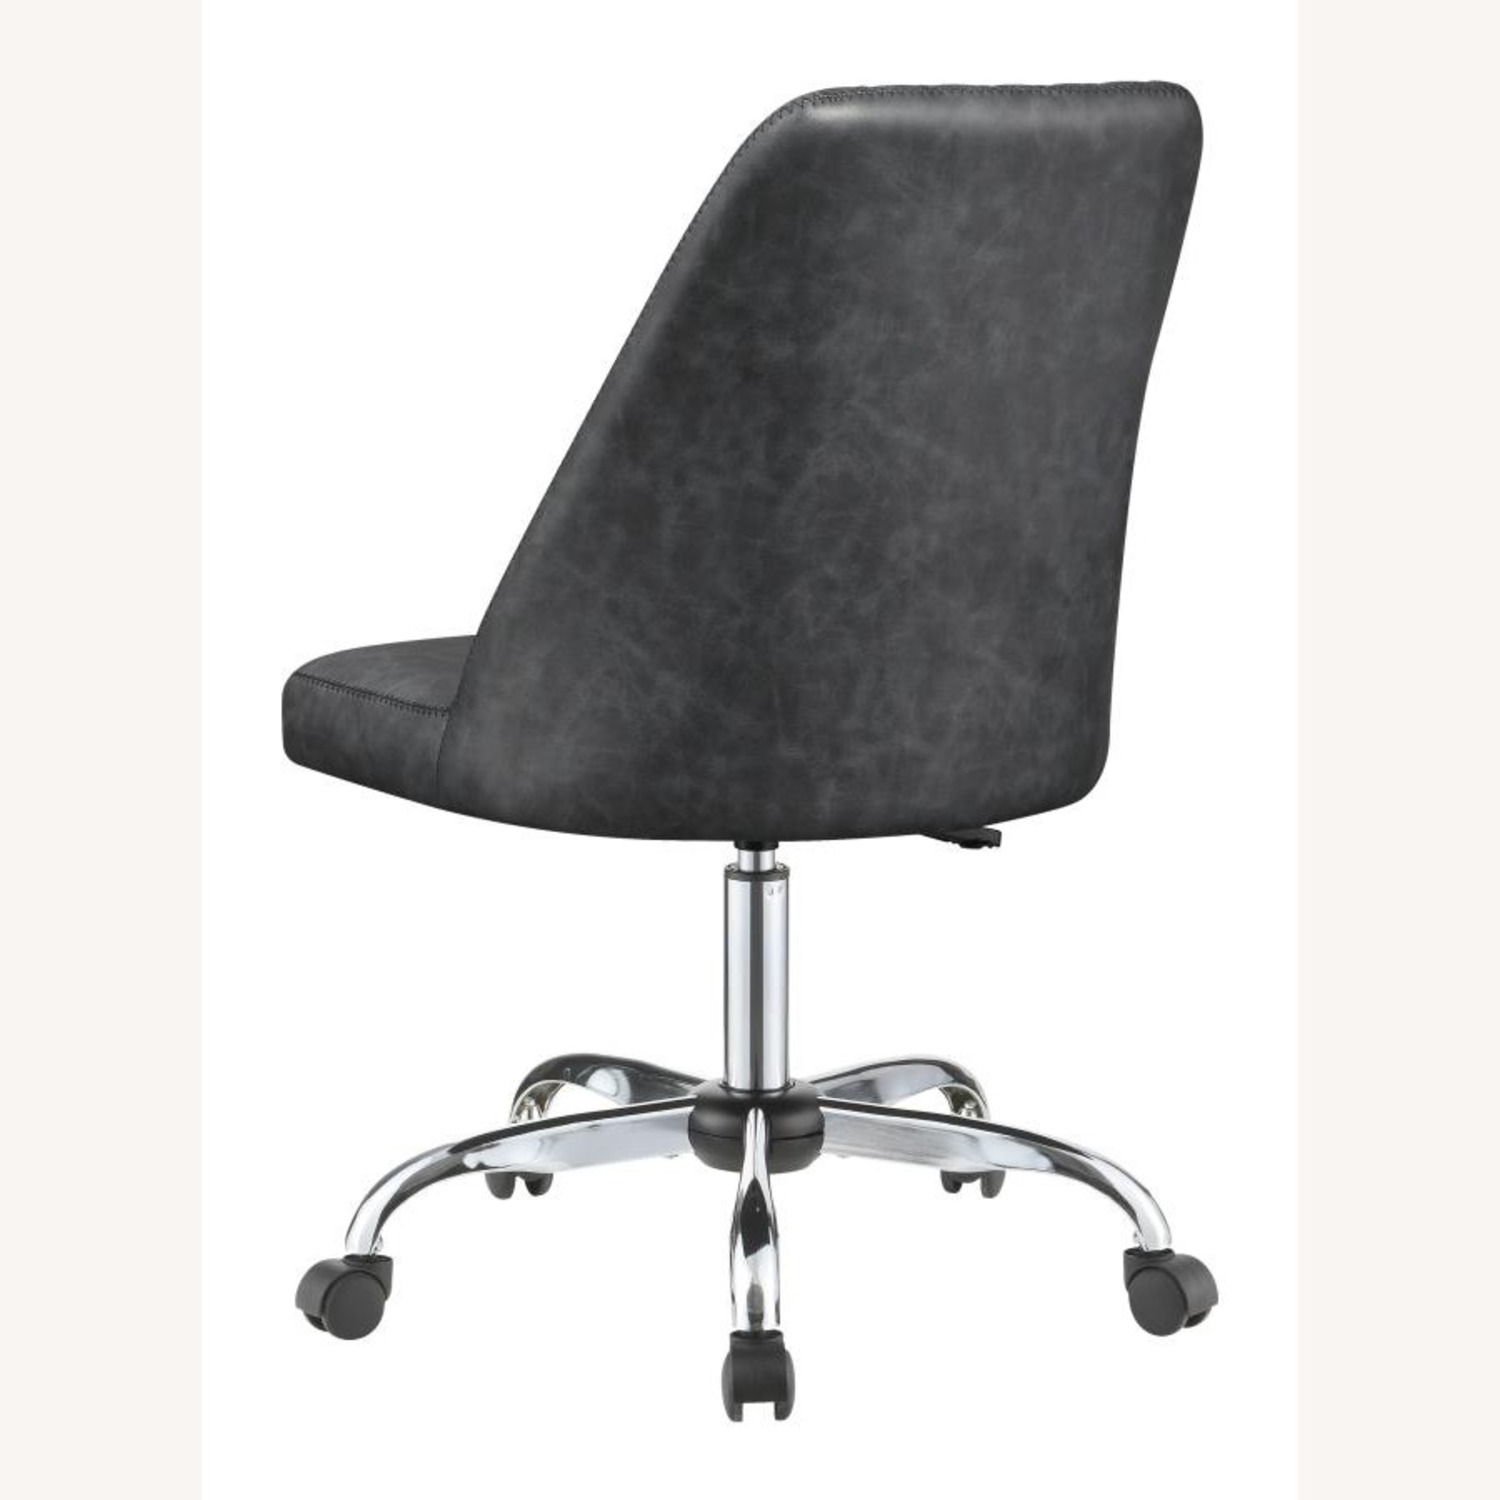 Office Chair In Tufted Grey Leatherette Upholstery - image-3